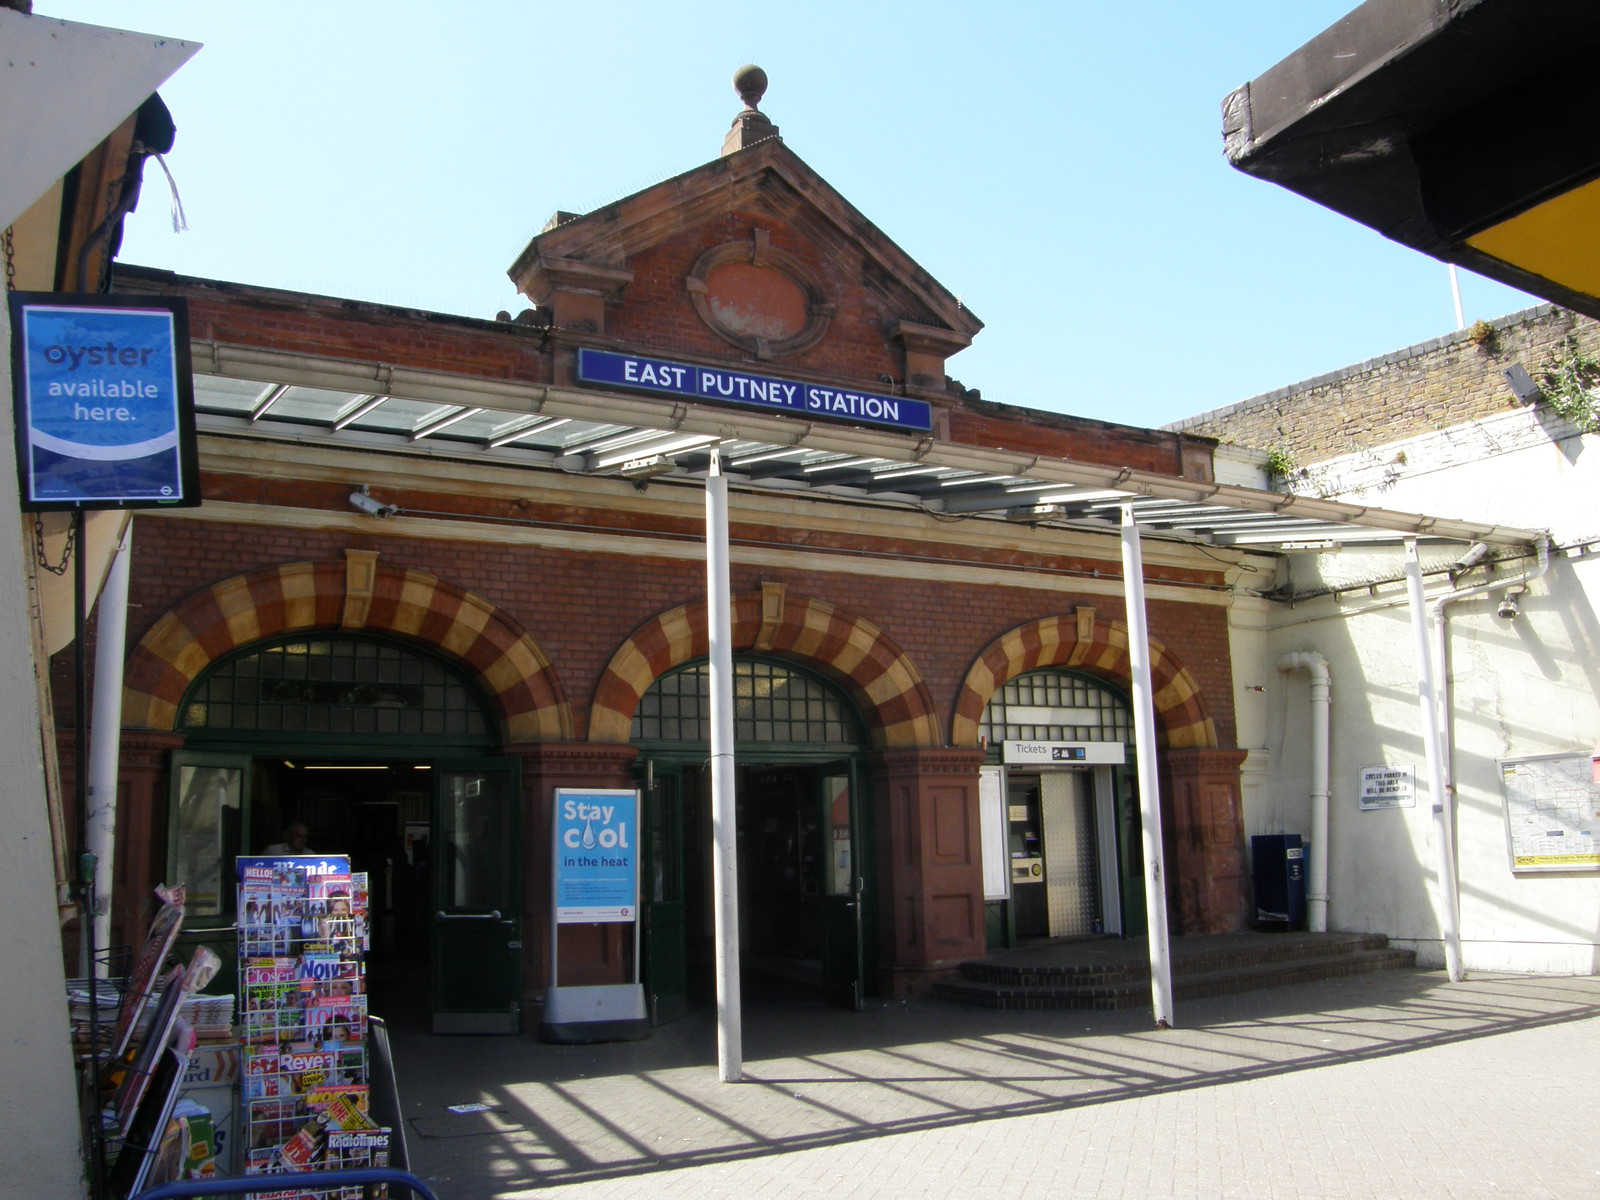 East Putney station